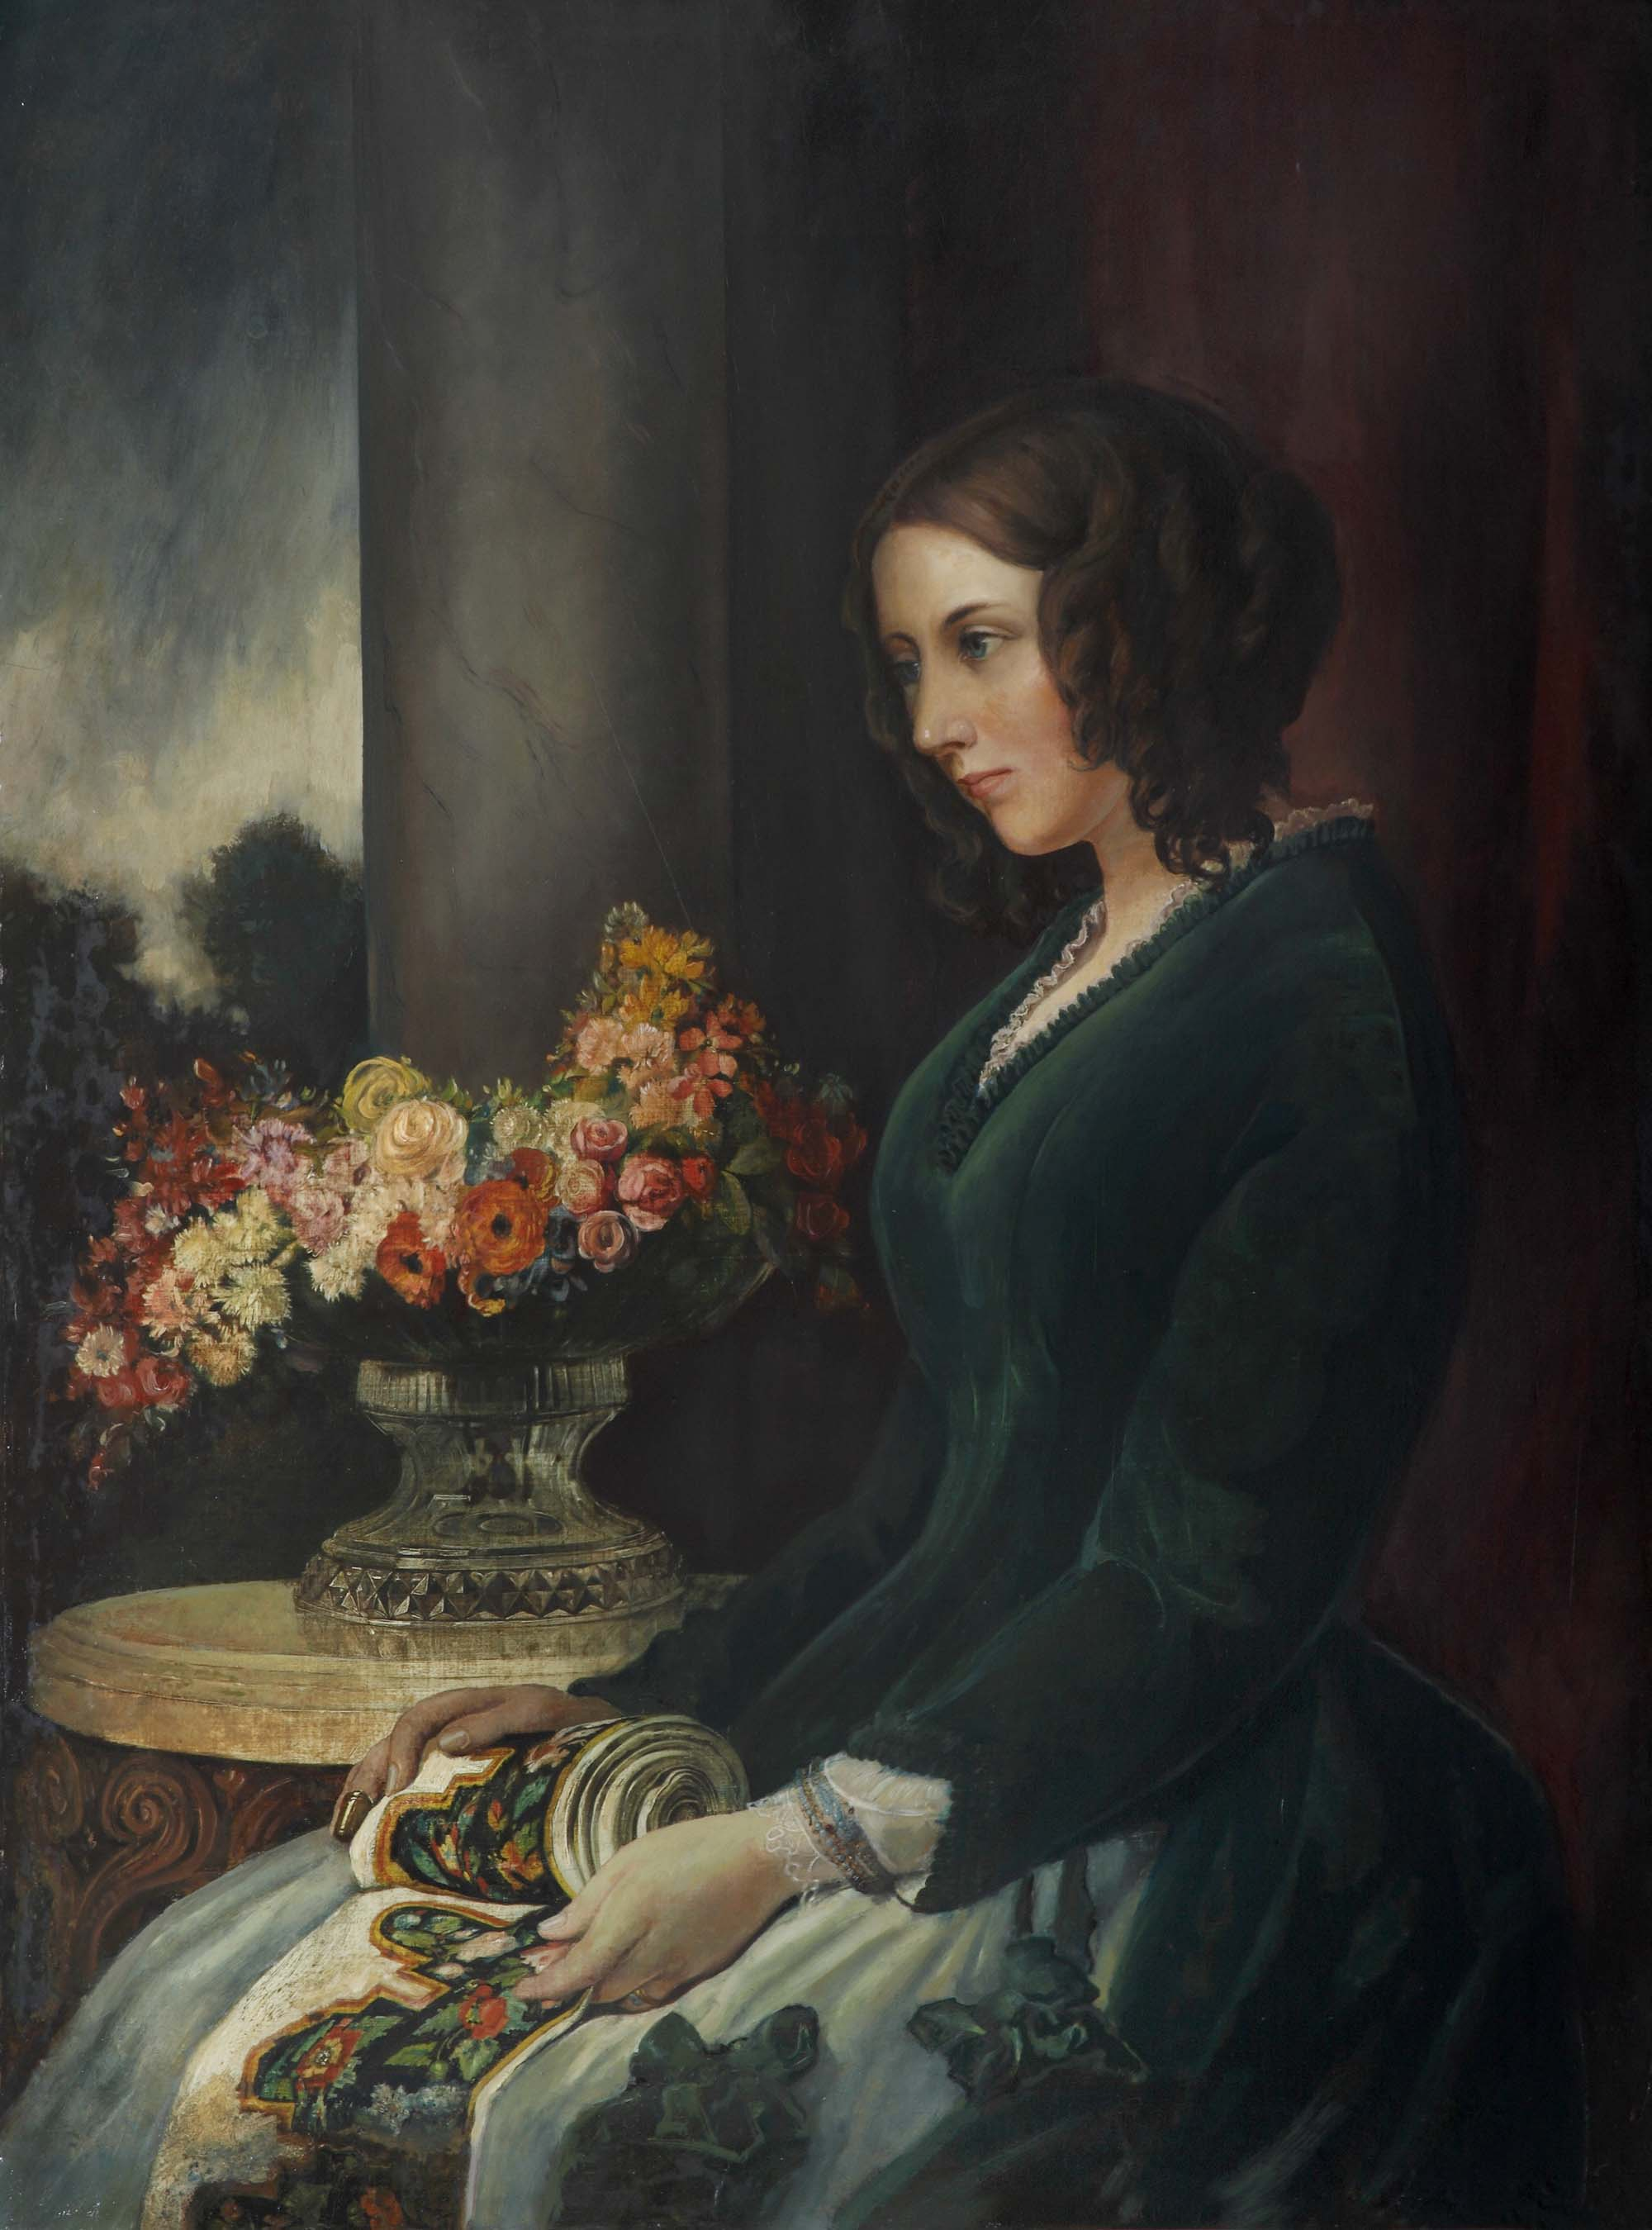 a painting of a woman with dark hair and a dark green dress